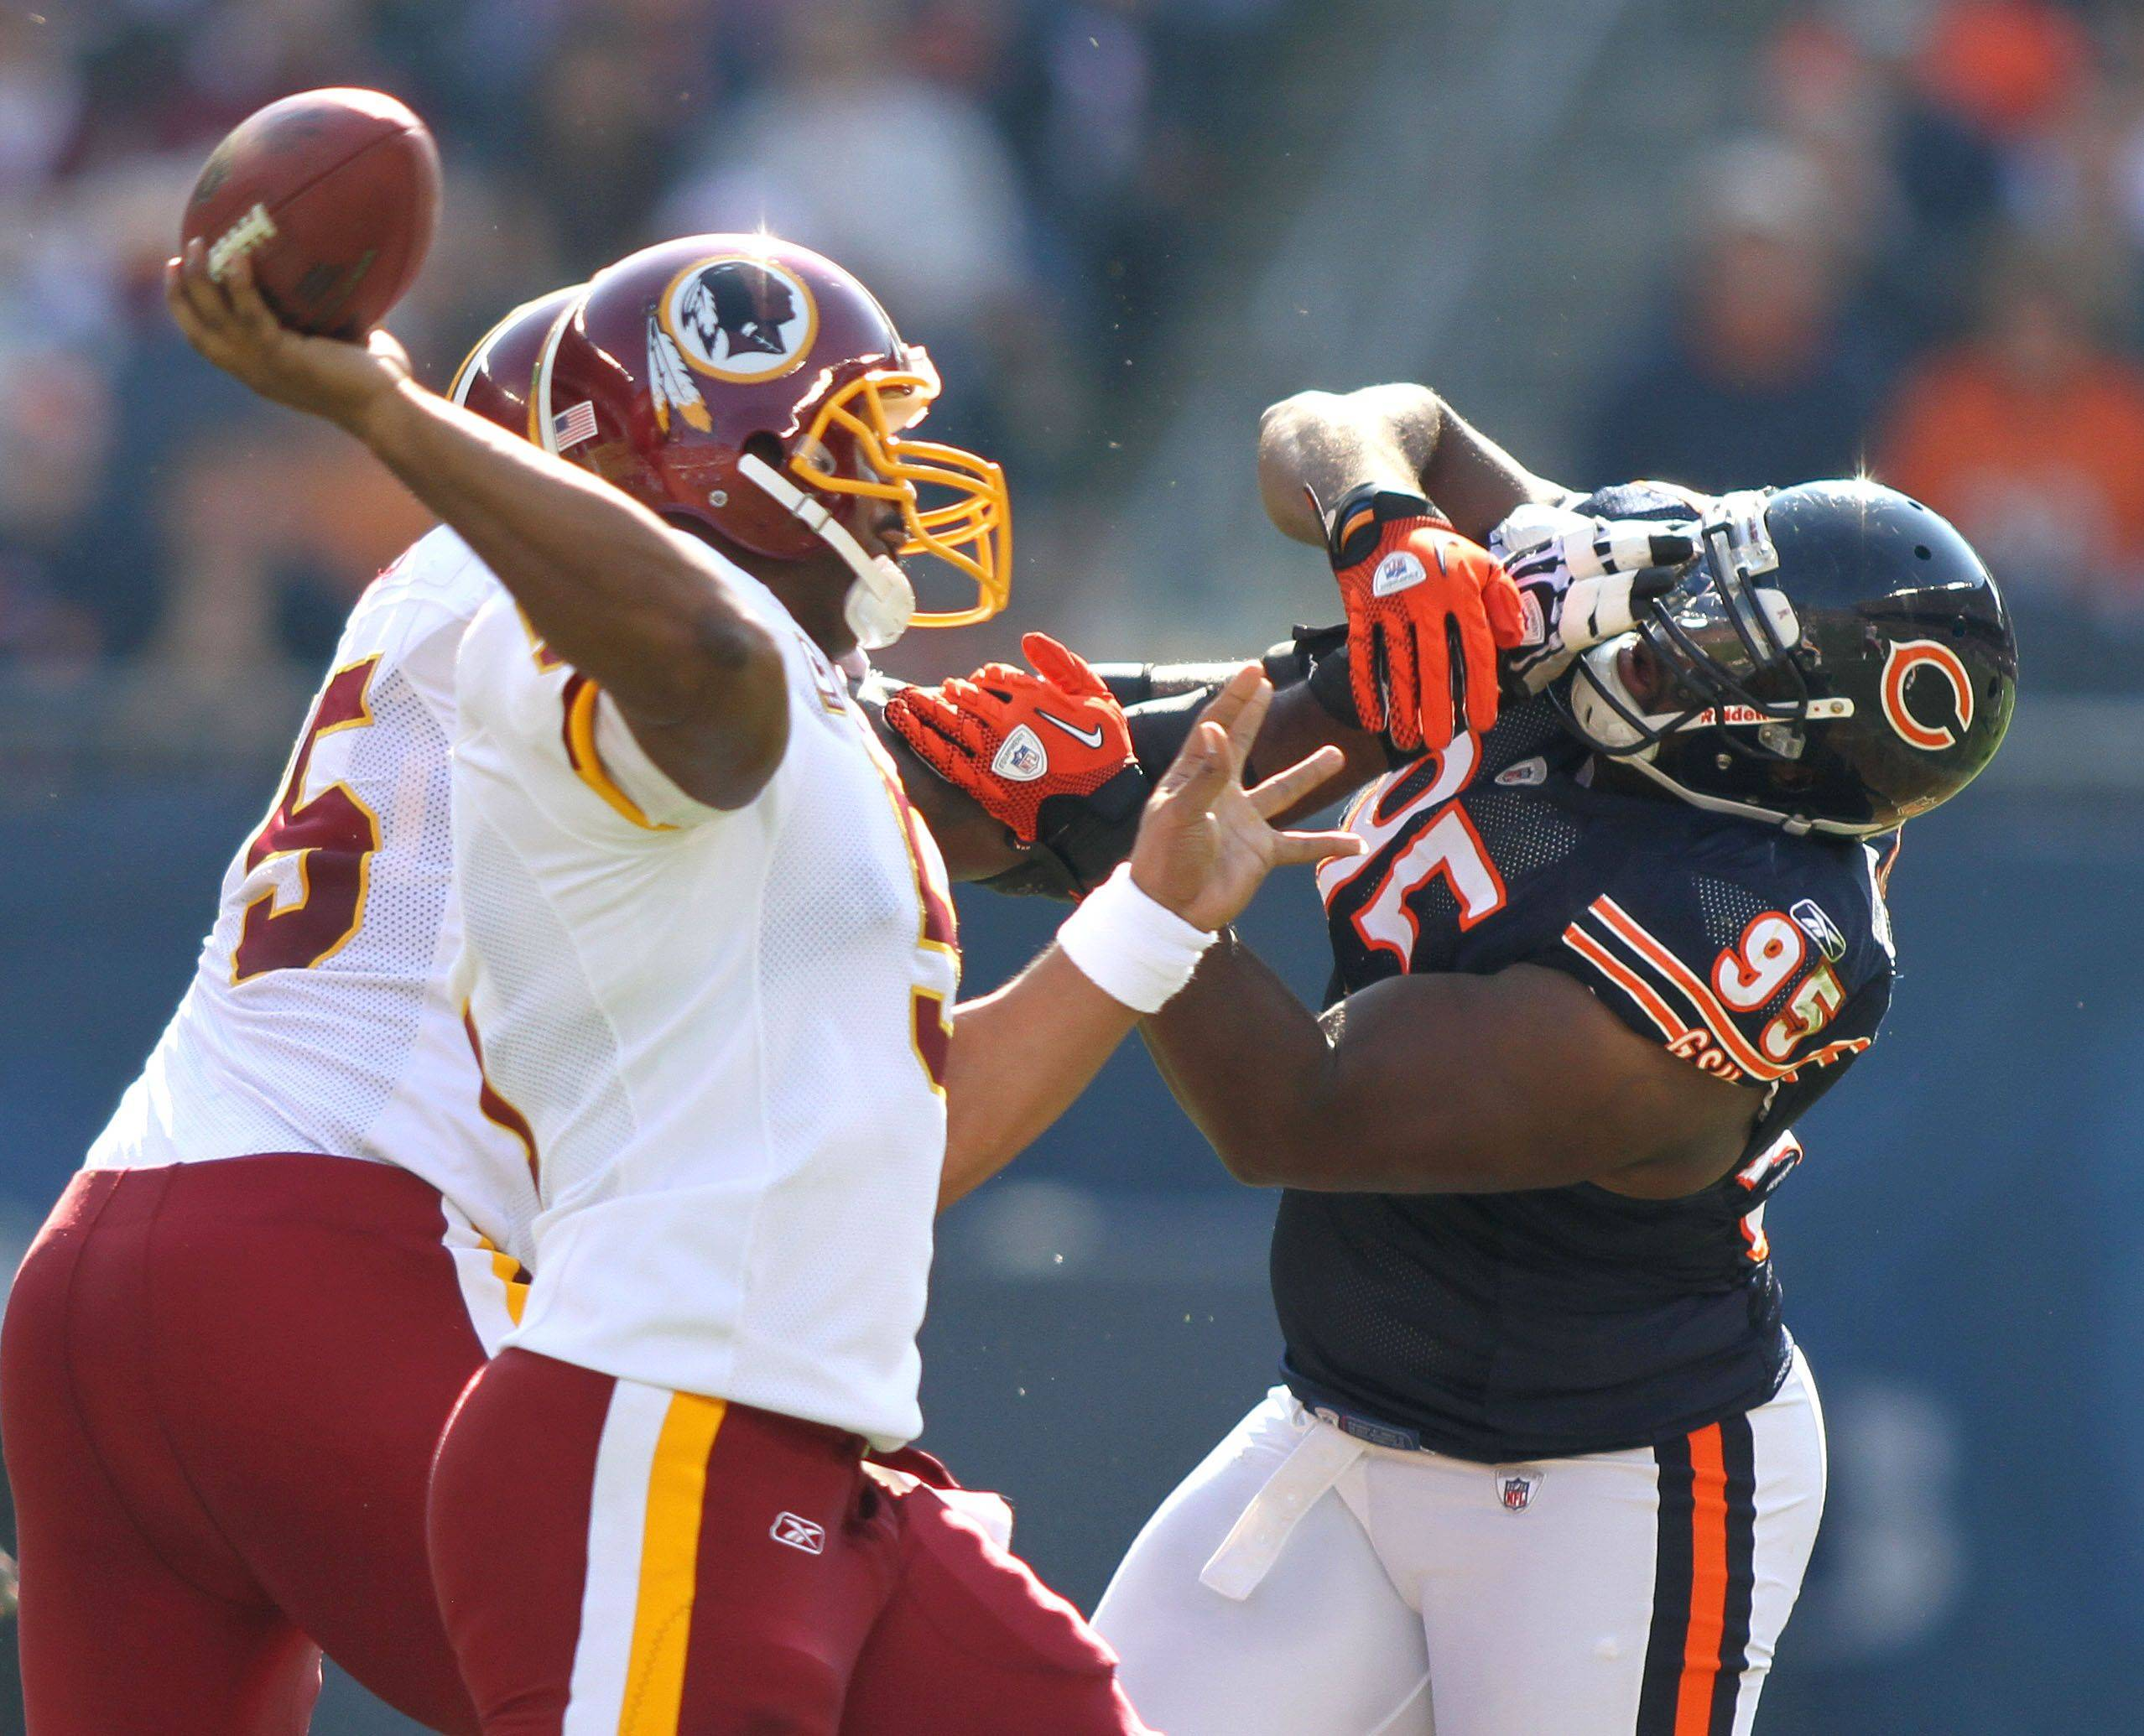 Chicago Bears defensive tackle Anthony Adams rushes Washington Redskins quarterback Donovan McNabb during the Bears' 14-17 loss to the Redskins.